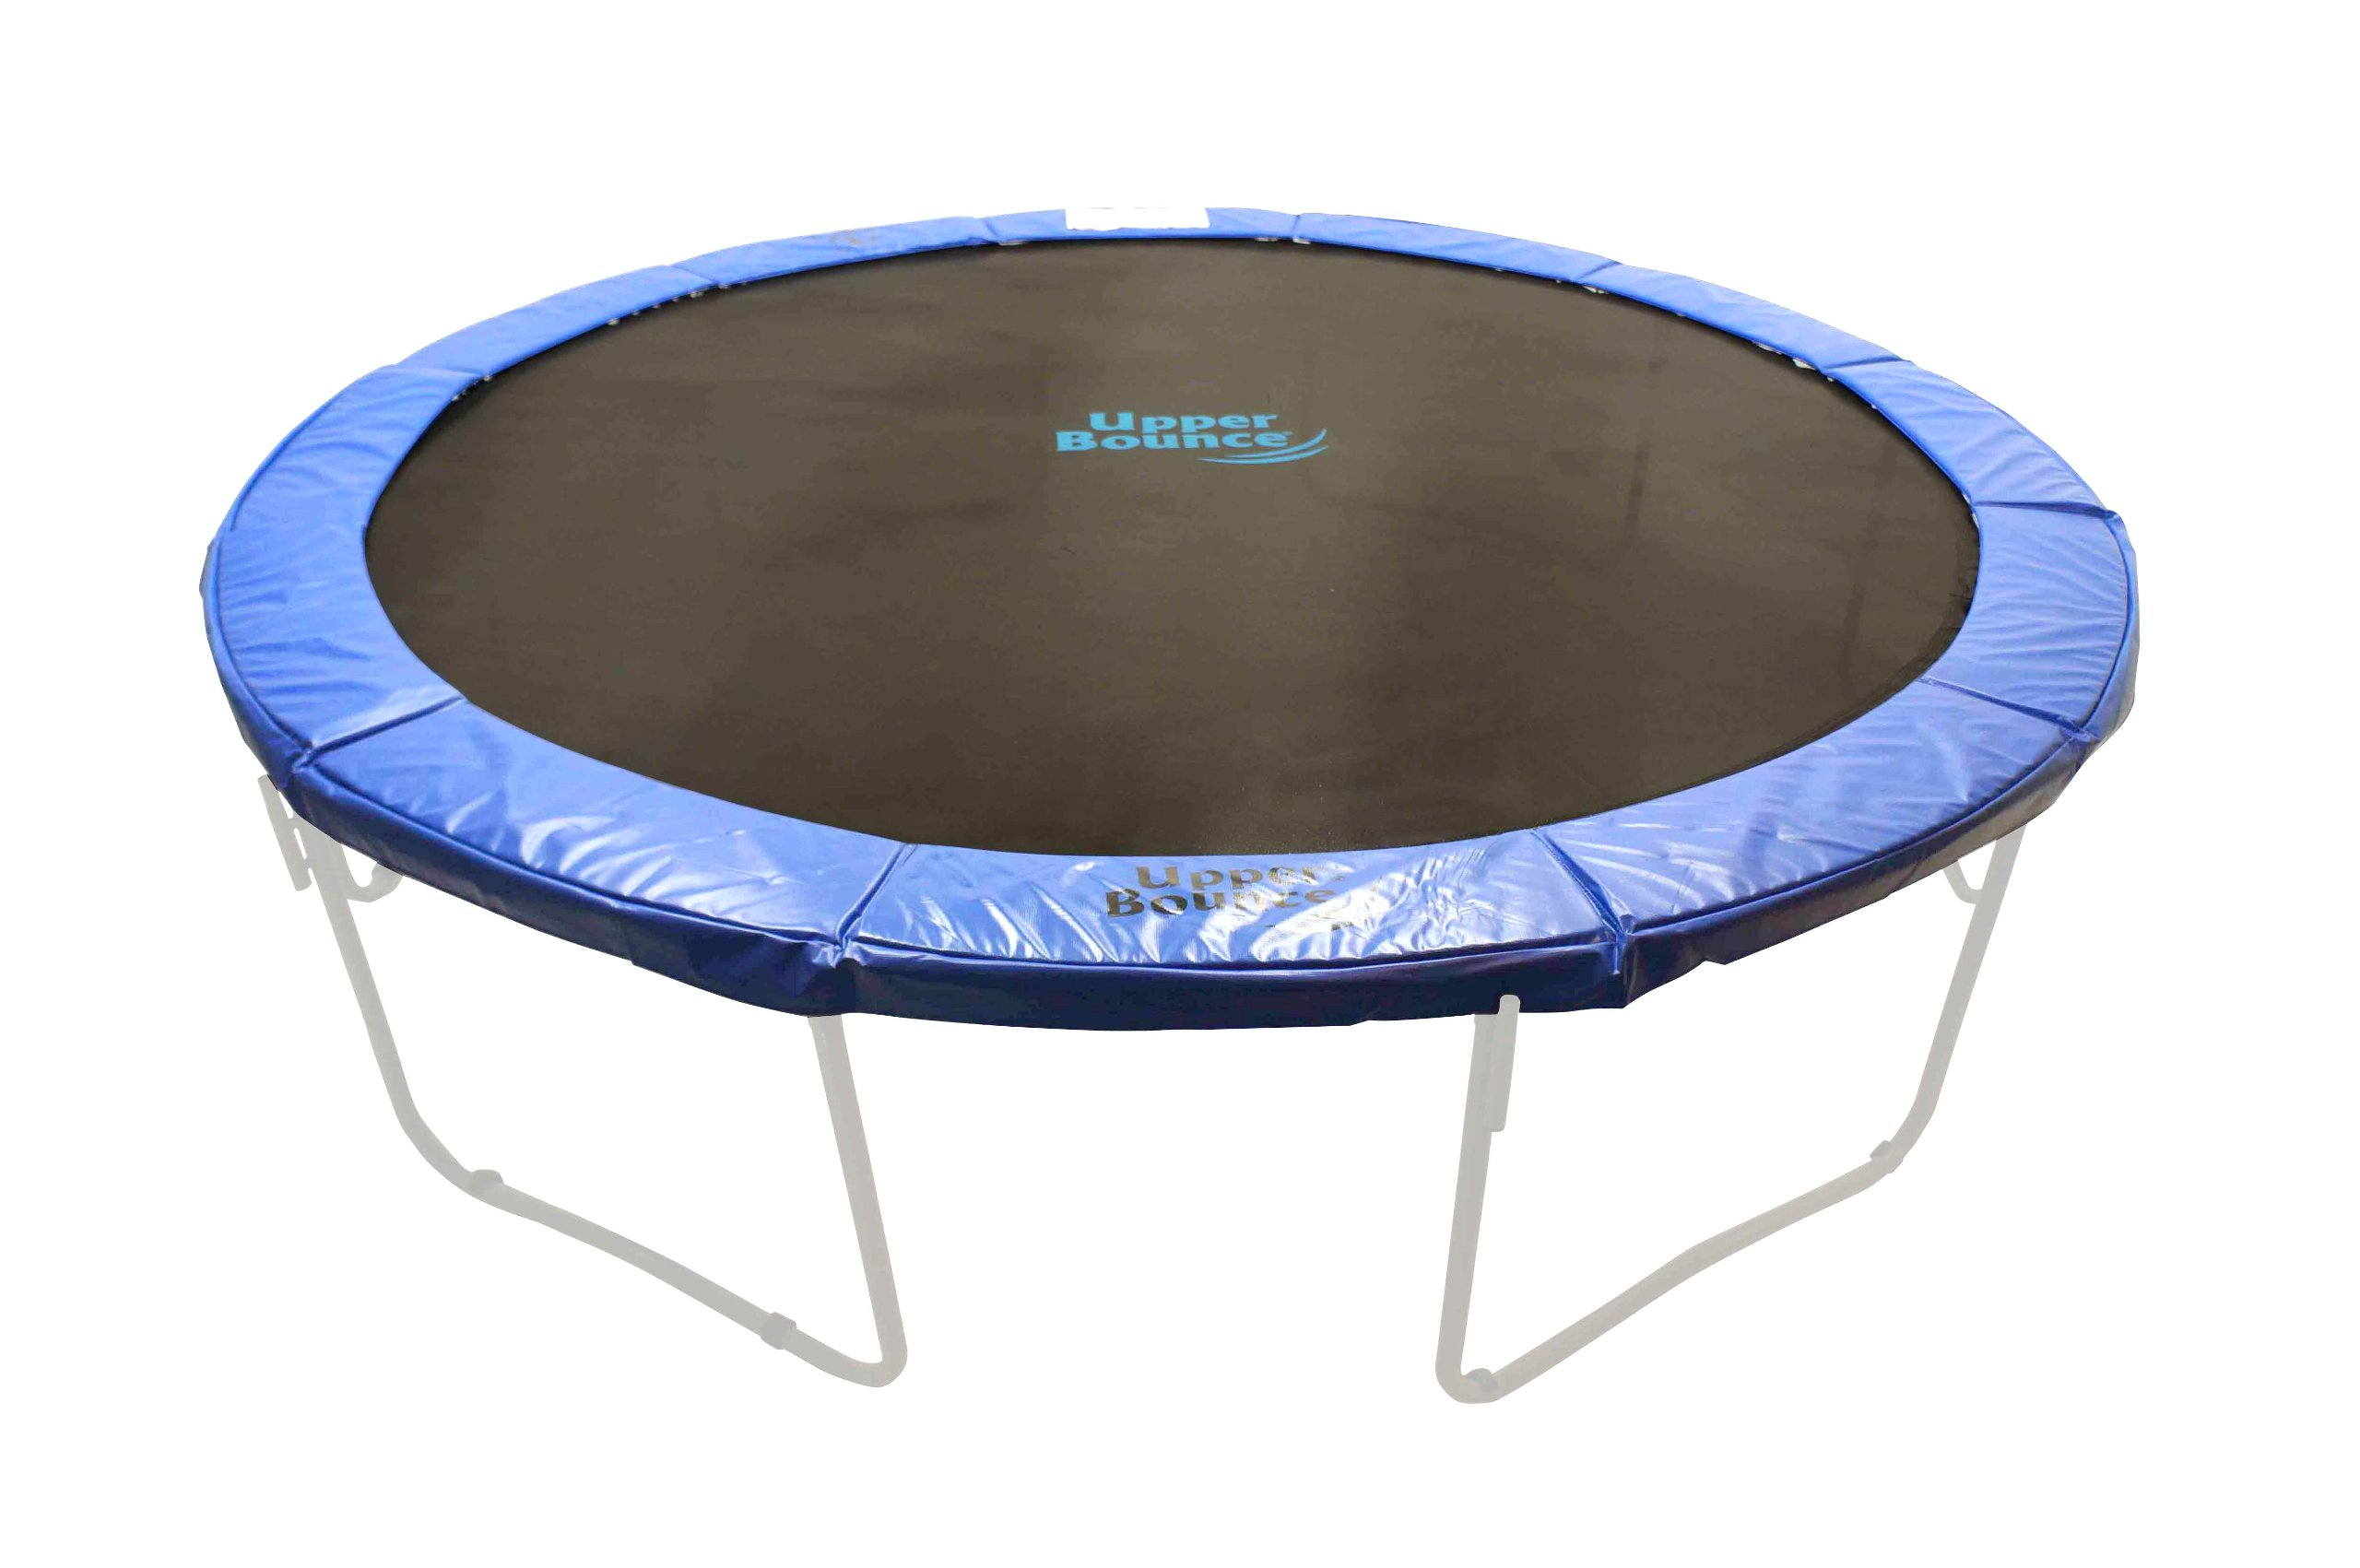 12' Premium Trampoline Safety Pad (Spring Cover) Fits for 12 FT. Round Trampoline Frames. 10'' wide - Blue